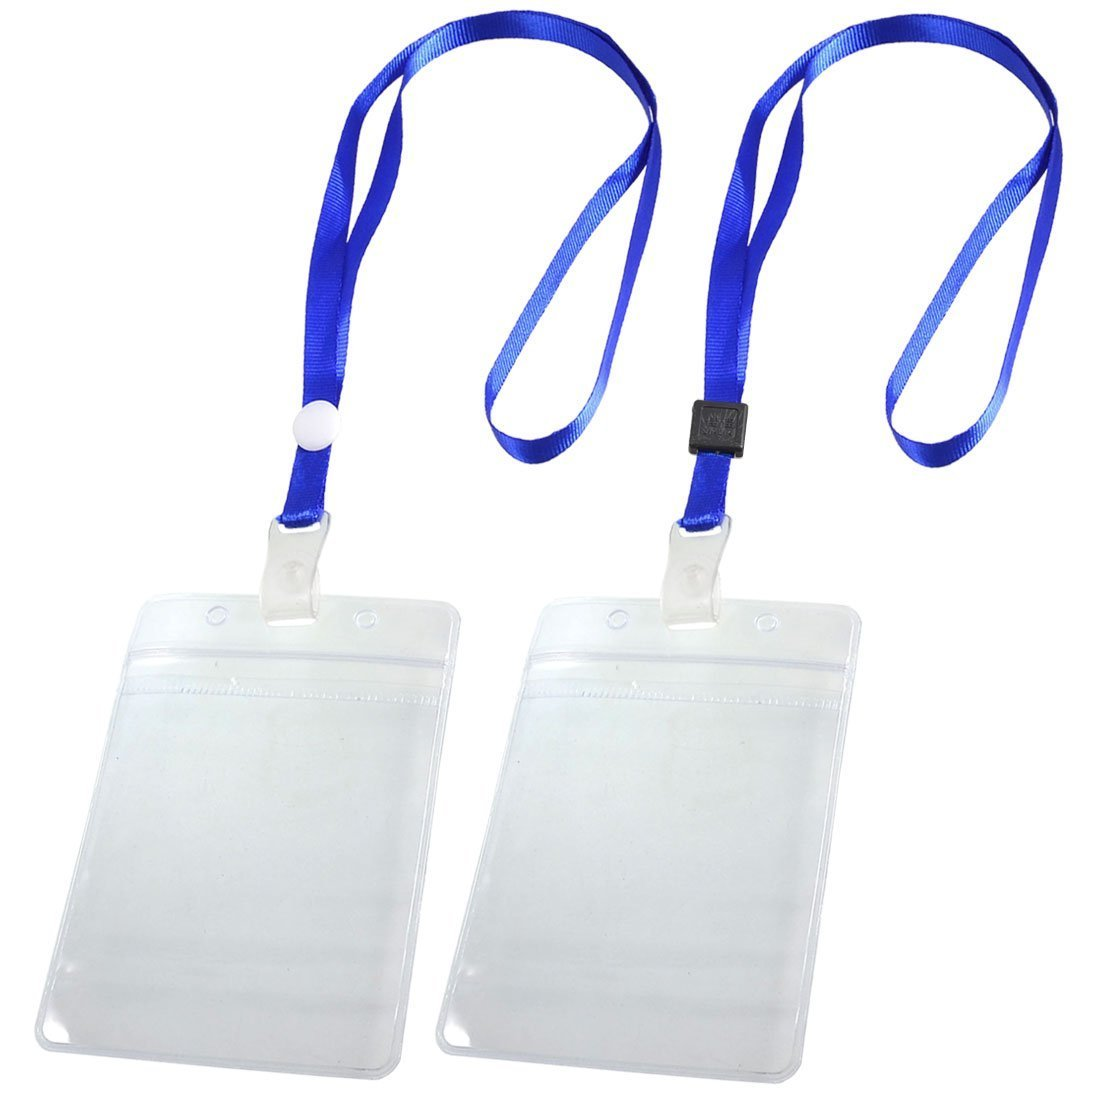 10X Vertical Leather Business ID Badge Card Holder W// Long Lanyard Neck Strap US